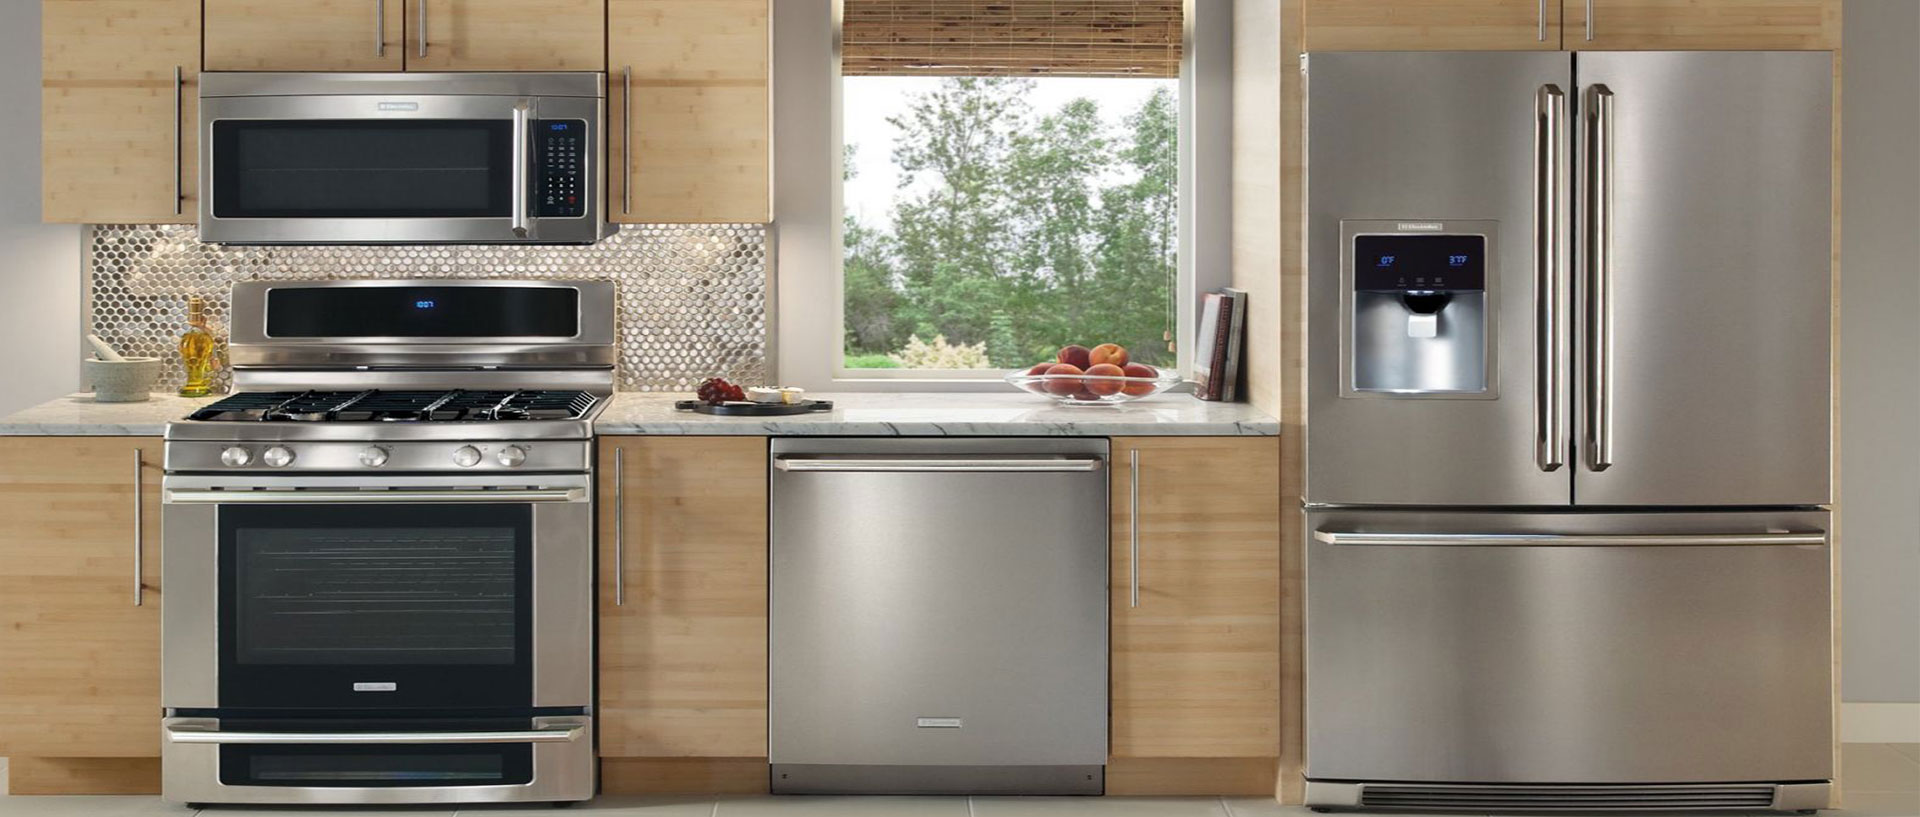 The Best Appliance Finishes of 2017 | Appliances Connection